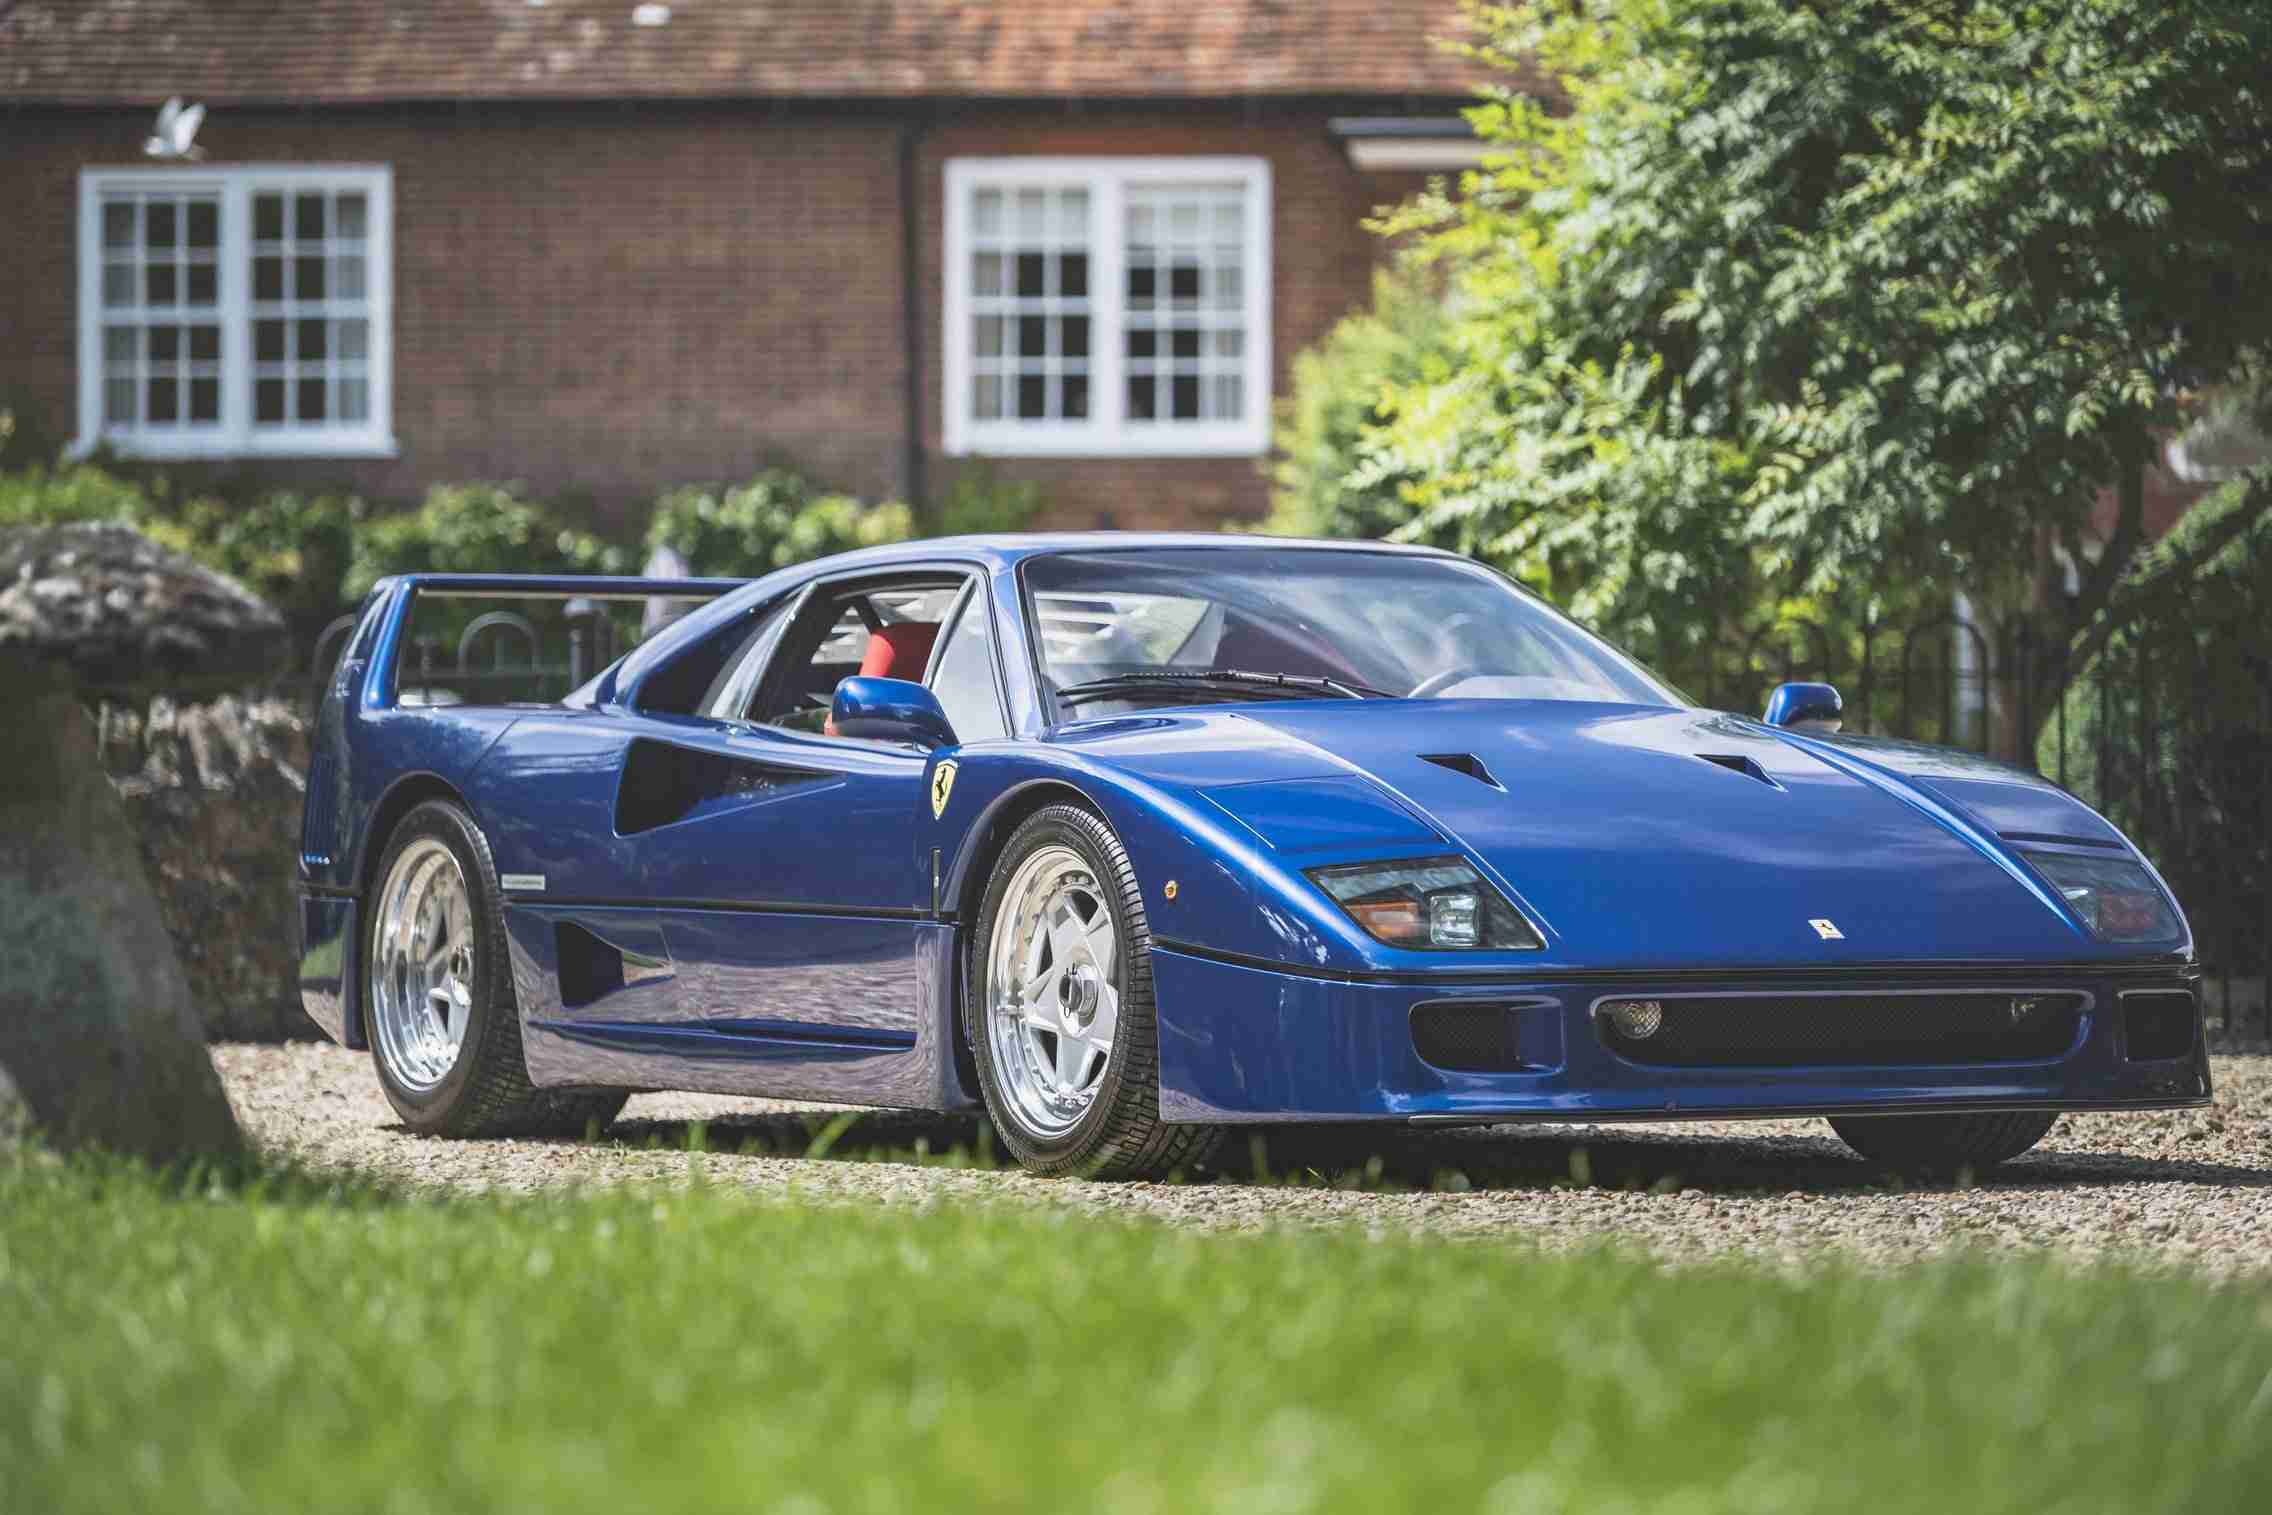 It is believed that nearly all Ferrari F40 models ever produced came finished in the marque's trademark red, making this vivid blue example just sold in the UK a first worldwide.